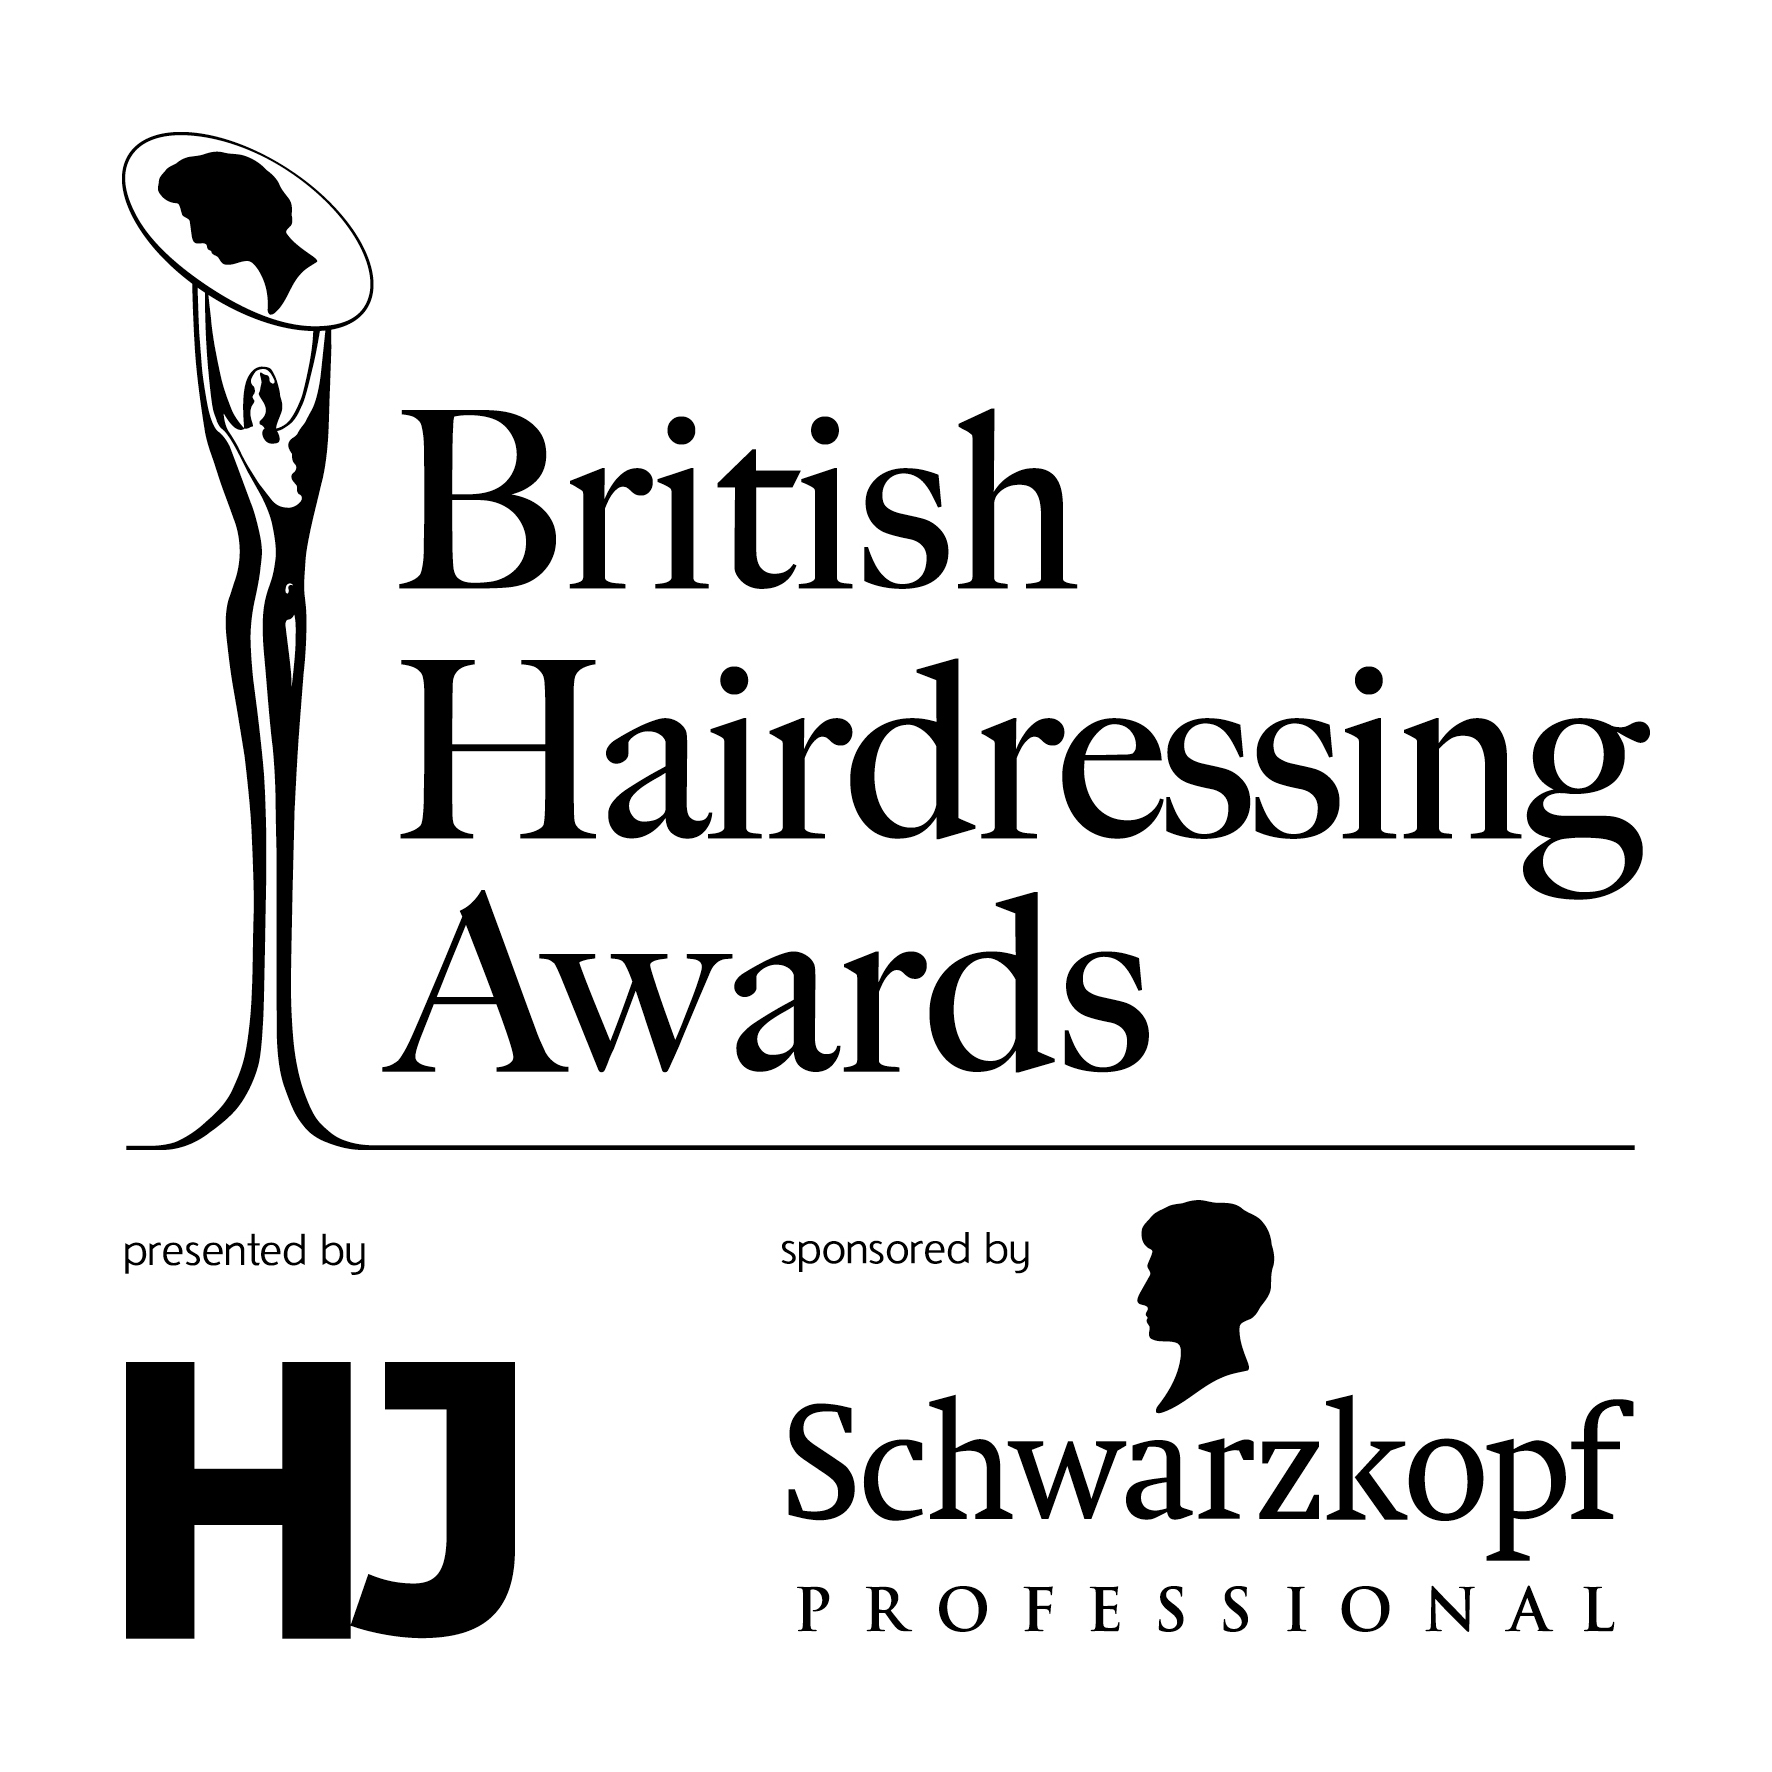 Anne Veck was British Hairdressing Awards Afro Hairdresser of the Year Finalist 2014